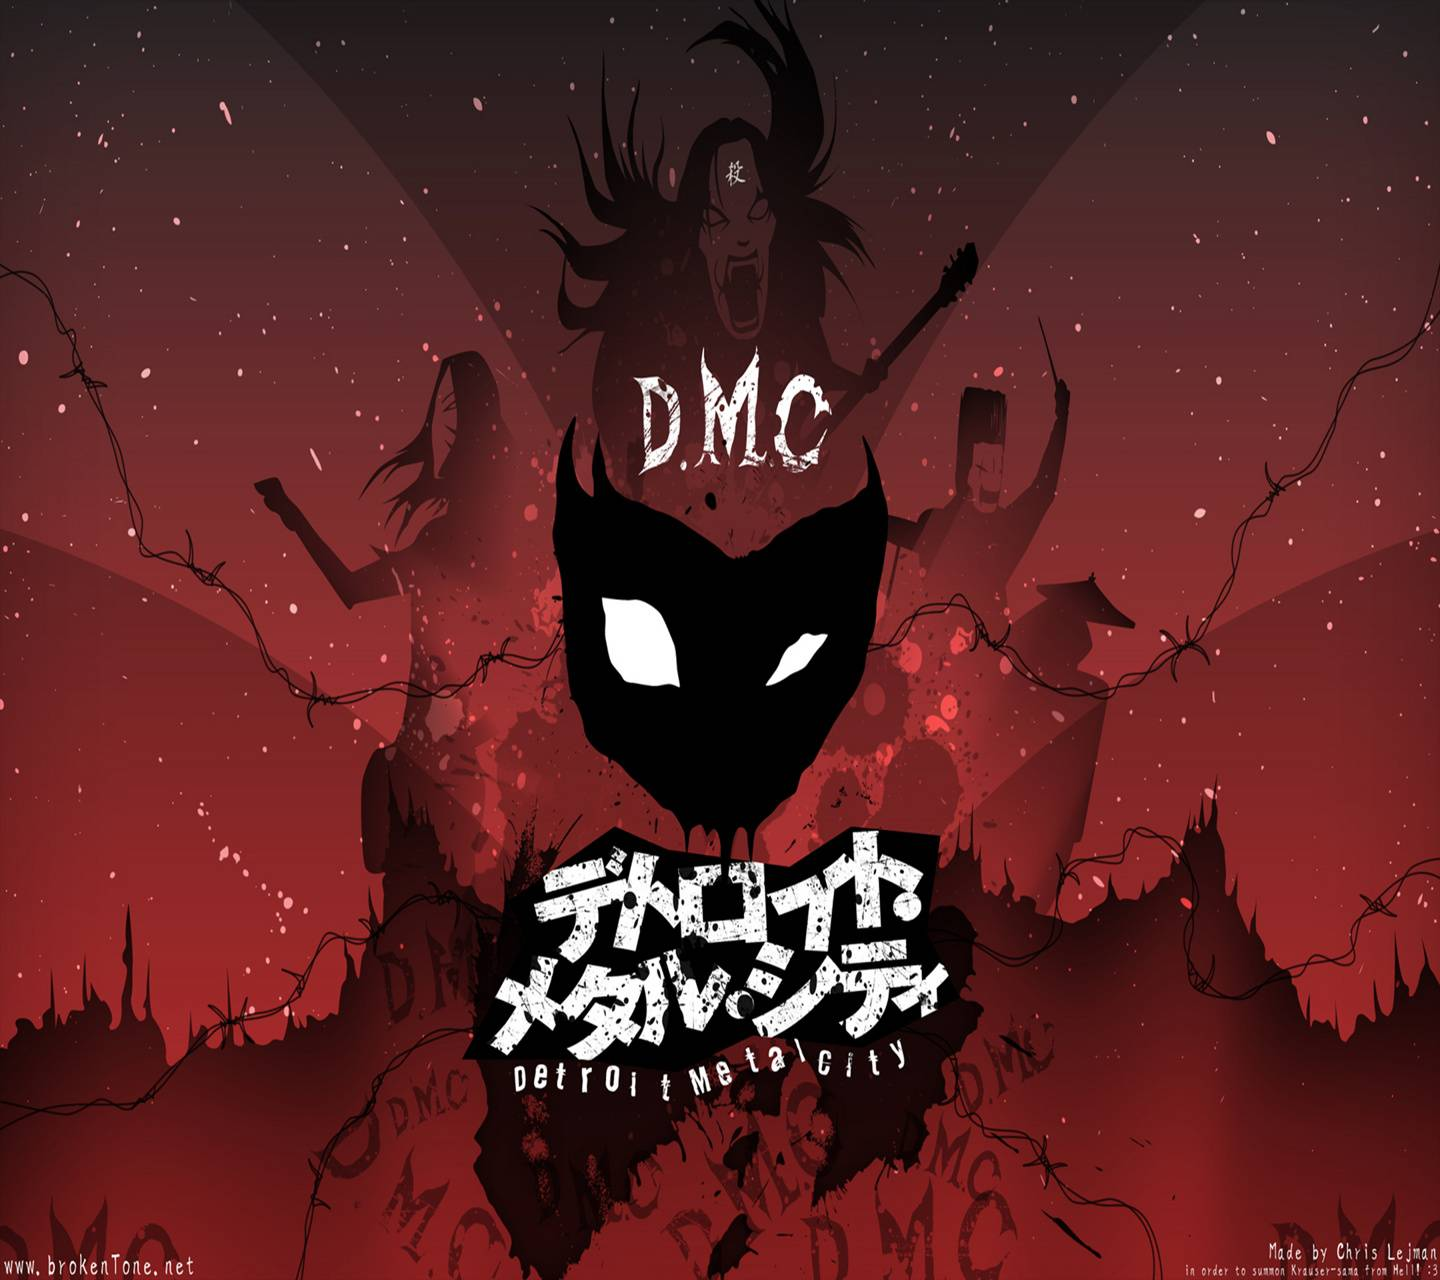 DMC Detroit Metal Ct